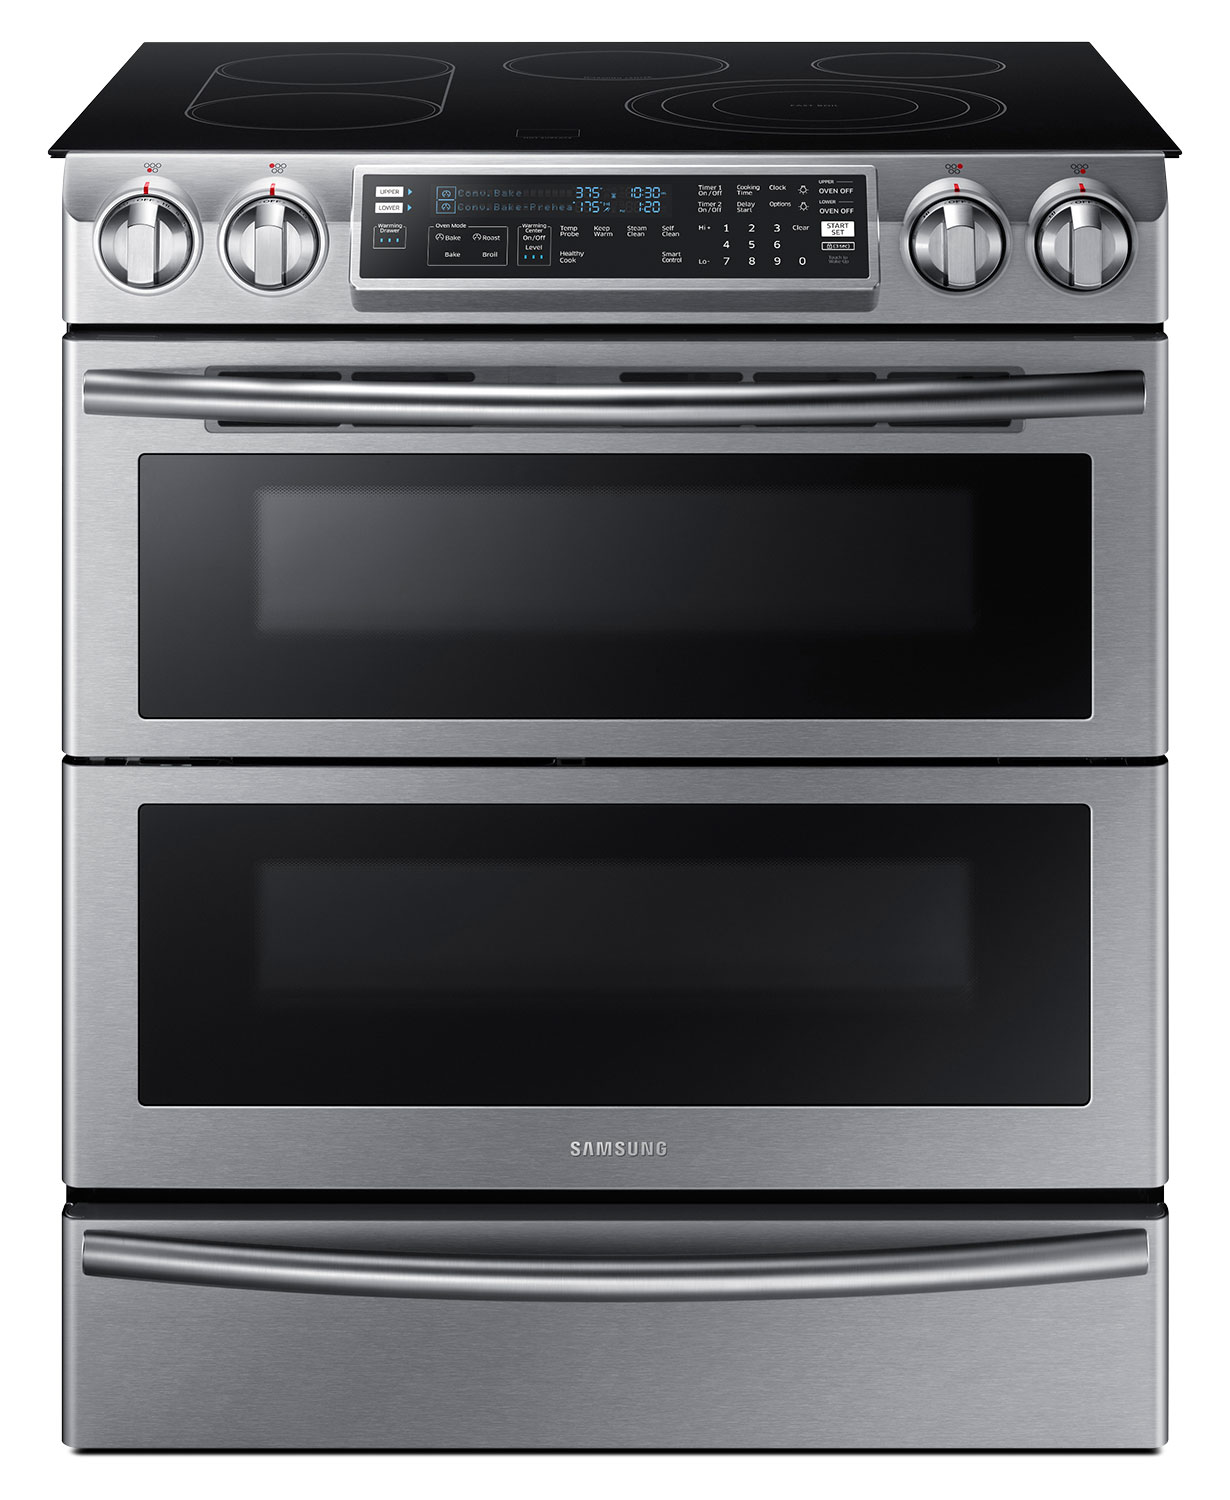 Samsung Slide-In Stainless Steel Electric Range w/ Flex Duo (5.8 Cu. Ft.) - NE58K9850WS/AC